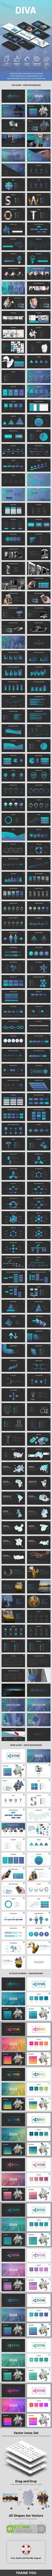 DIVA Business Pitch Deck. Download: https://graphicriver.net/item/diva-business-pitch-deck/18681287?ref=thanhdesign